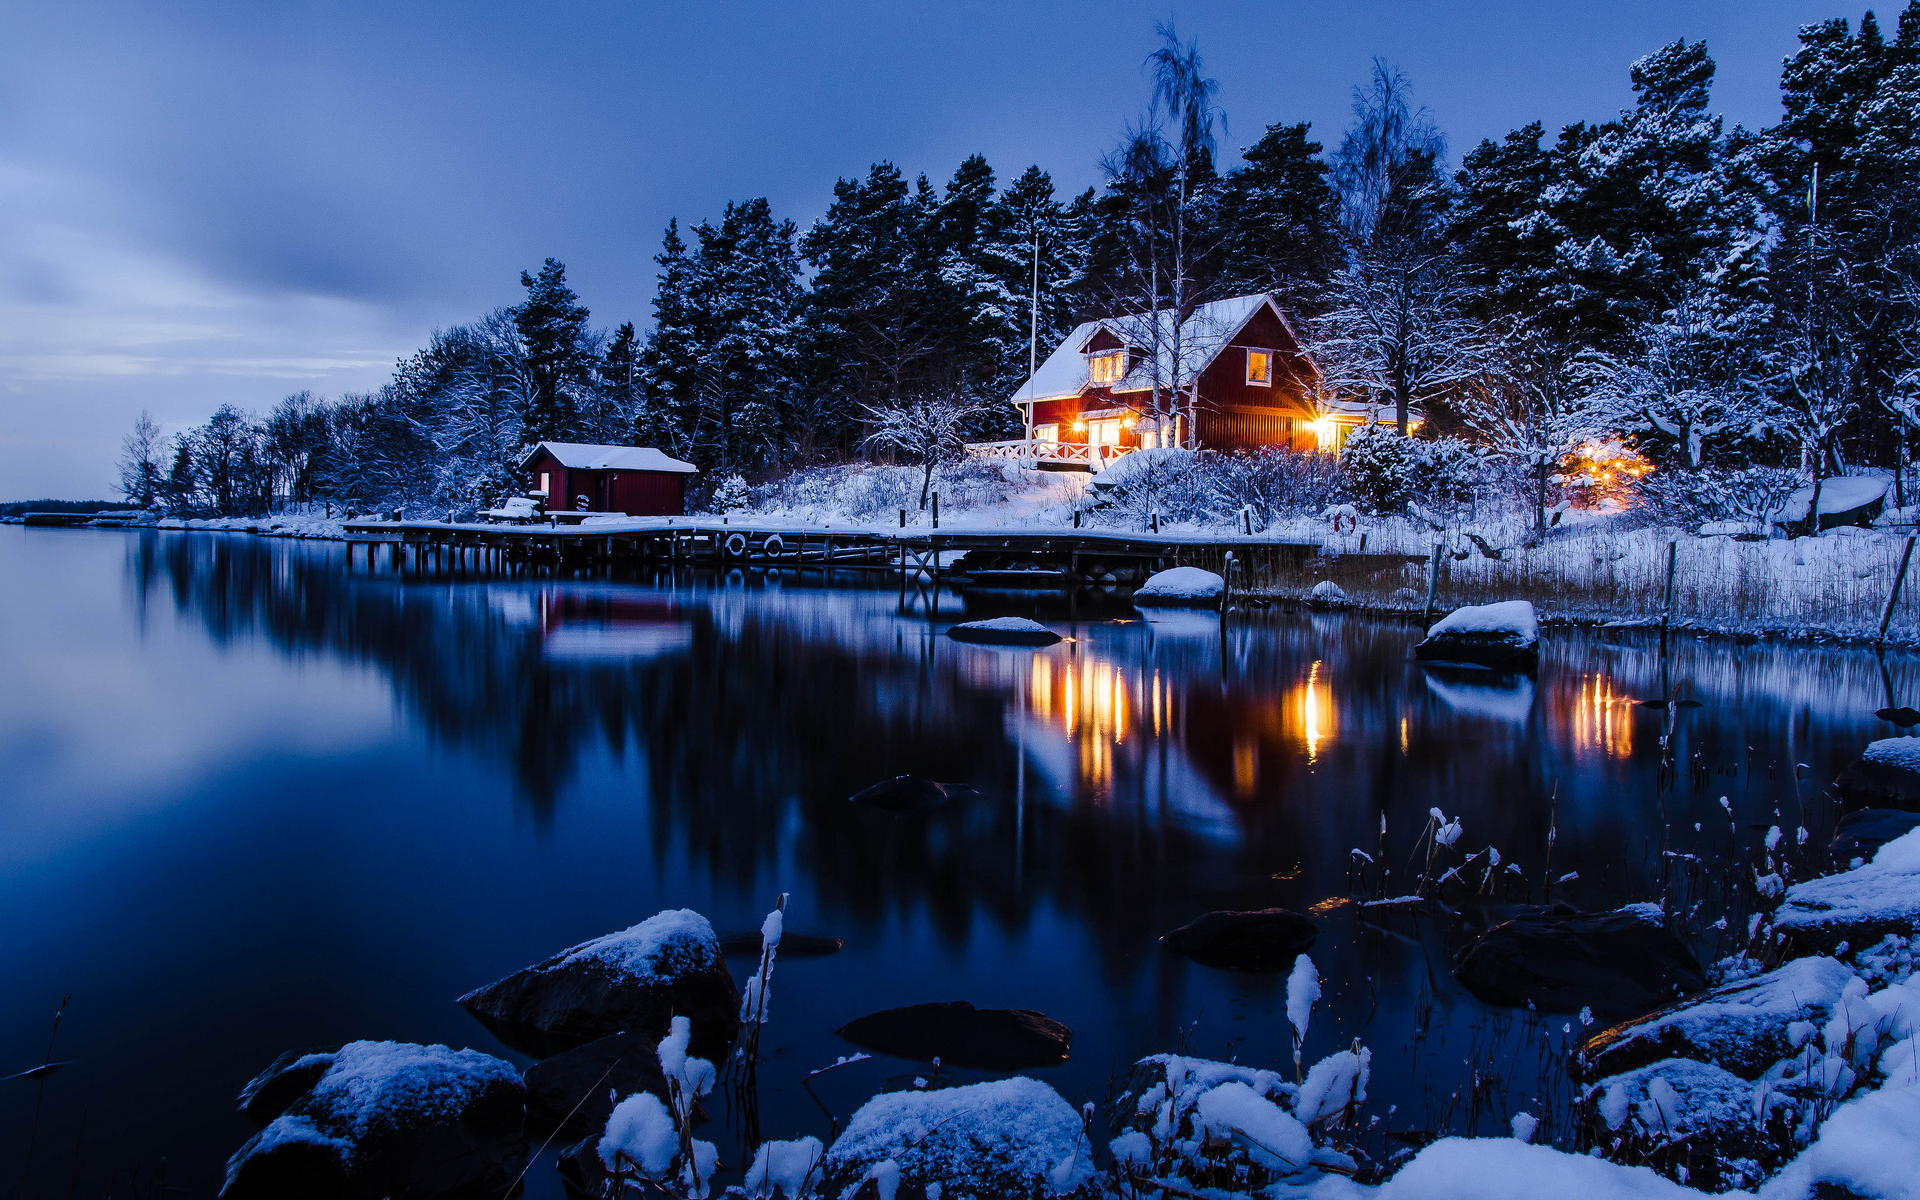 Winter Night Scenes Wallpaper.